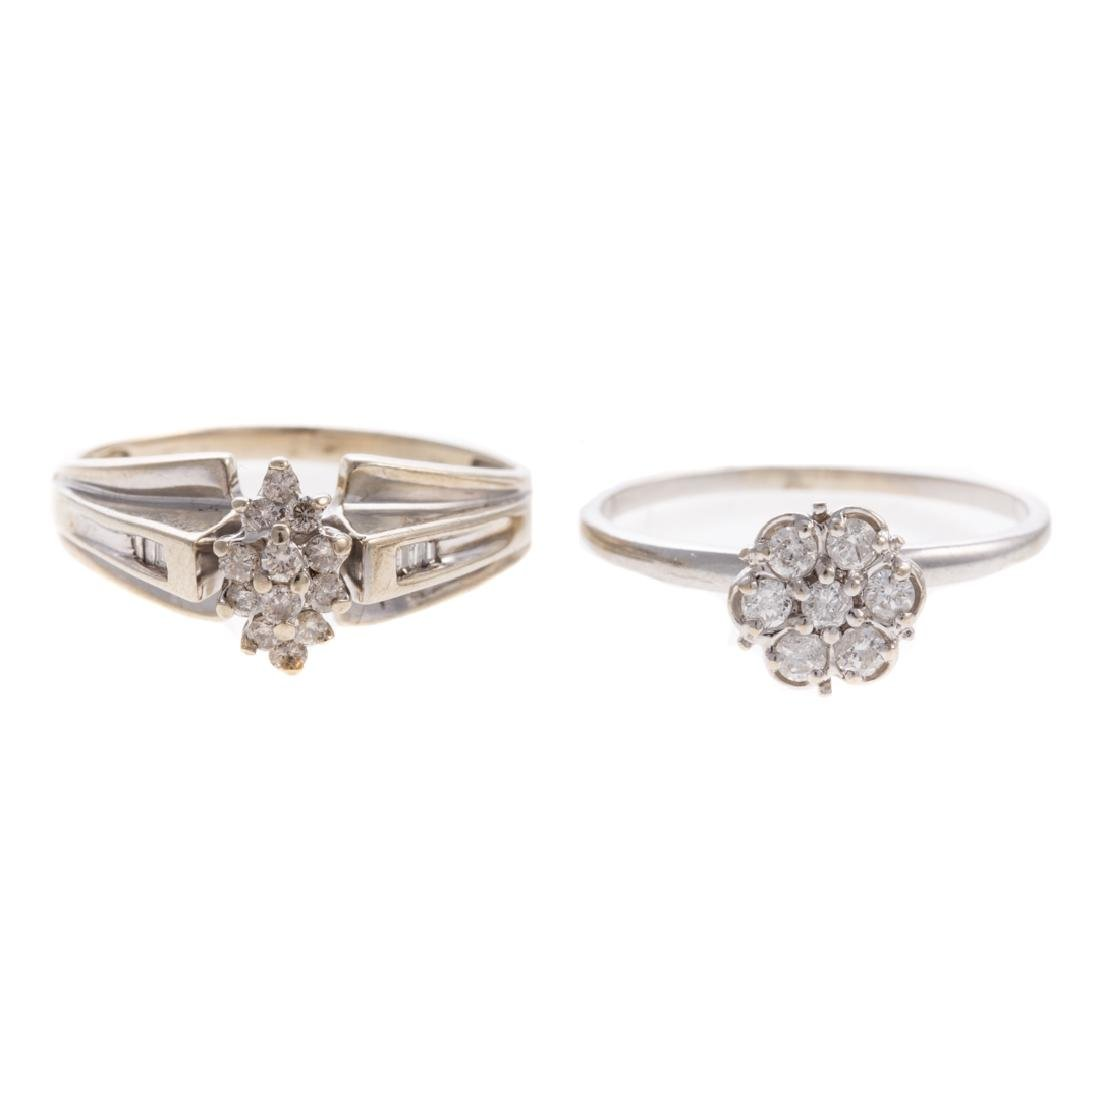 A Pair of White Gold Diamond Cluster Rings